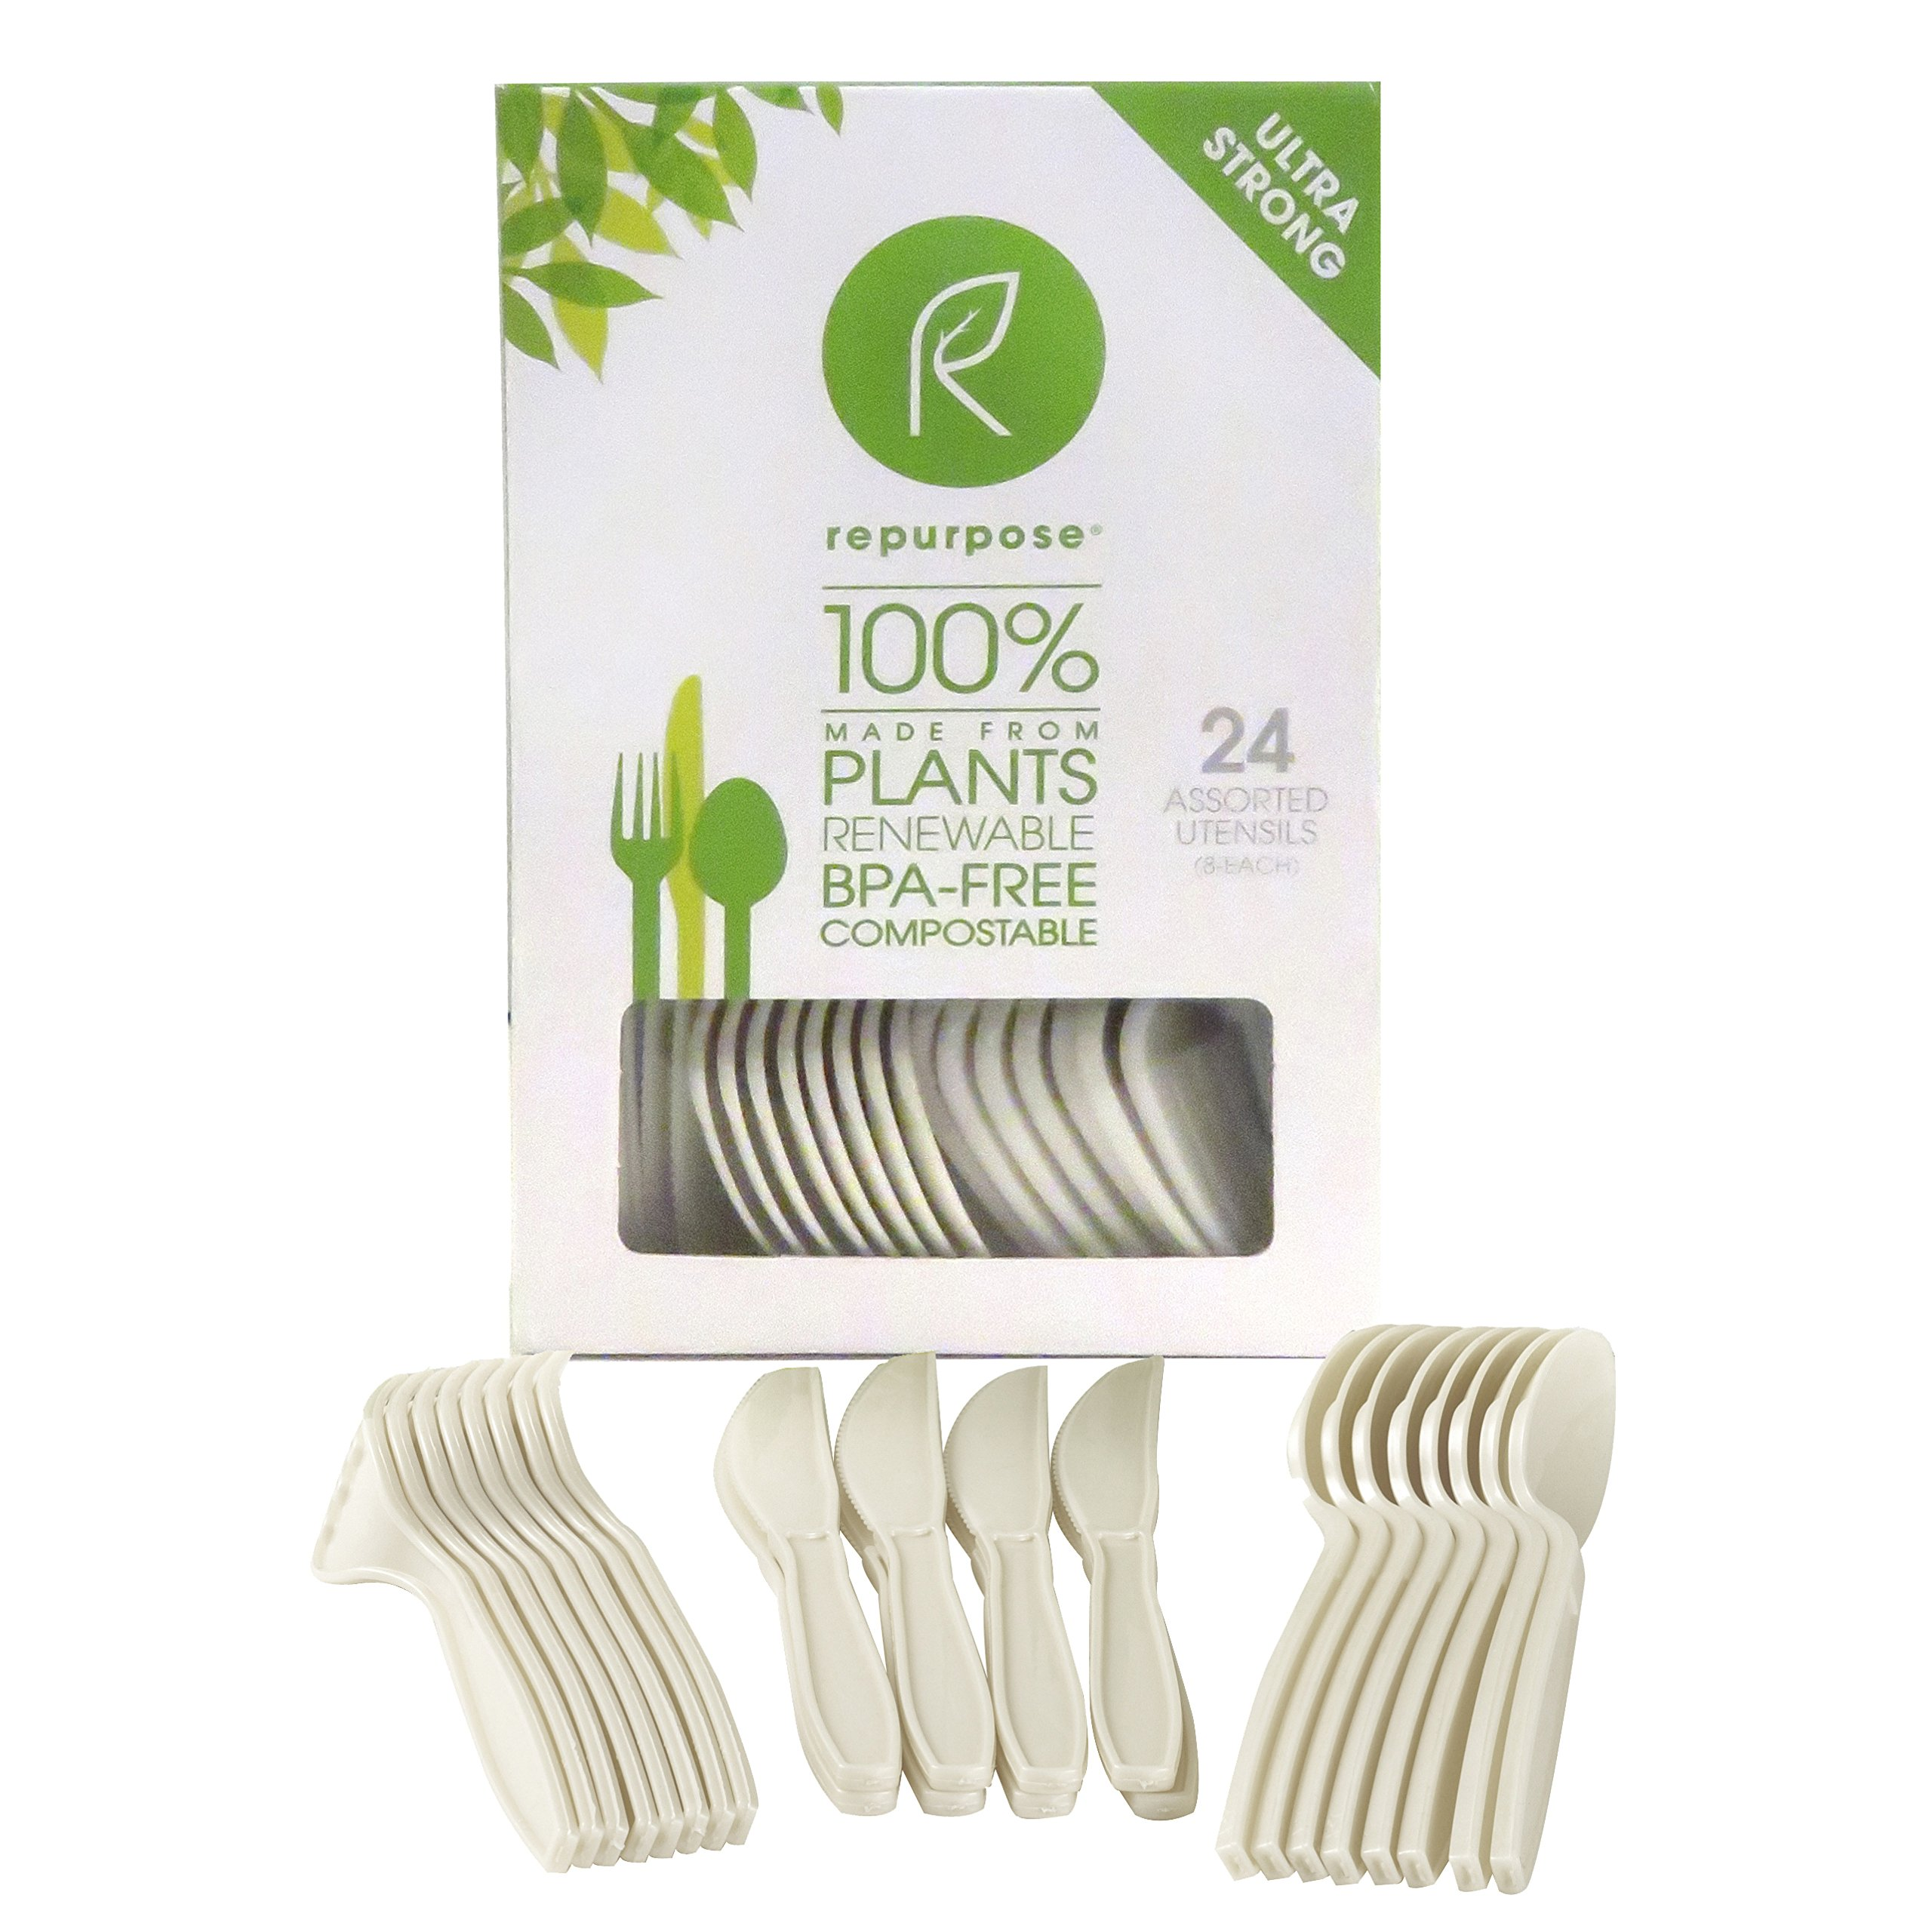 Repurpose 100% Compostable Plant-Based High Heat Utensils Combo Set, 24 Count (Pack - 20)